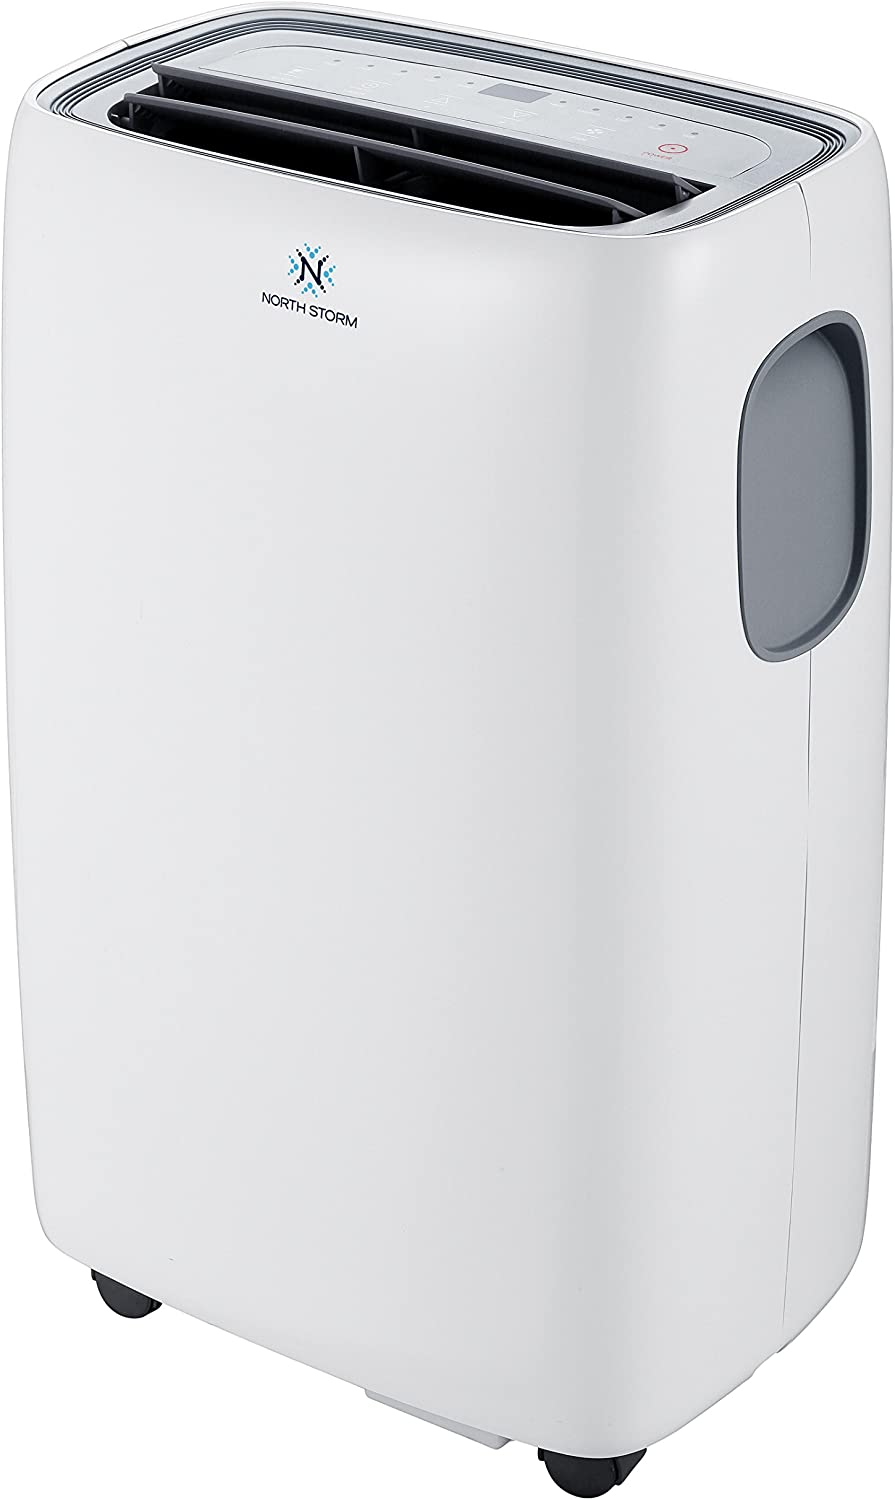 North Storm 8,000 BTU 3-in-1 Portable Air Conditioner, Remote Control, High Efficiency, 8000, White